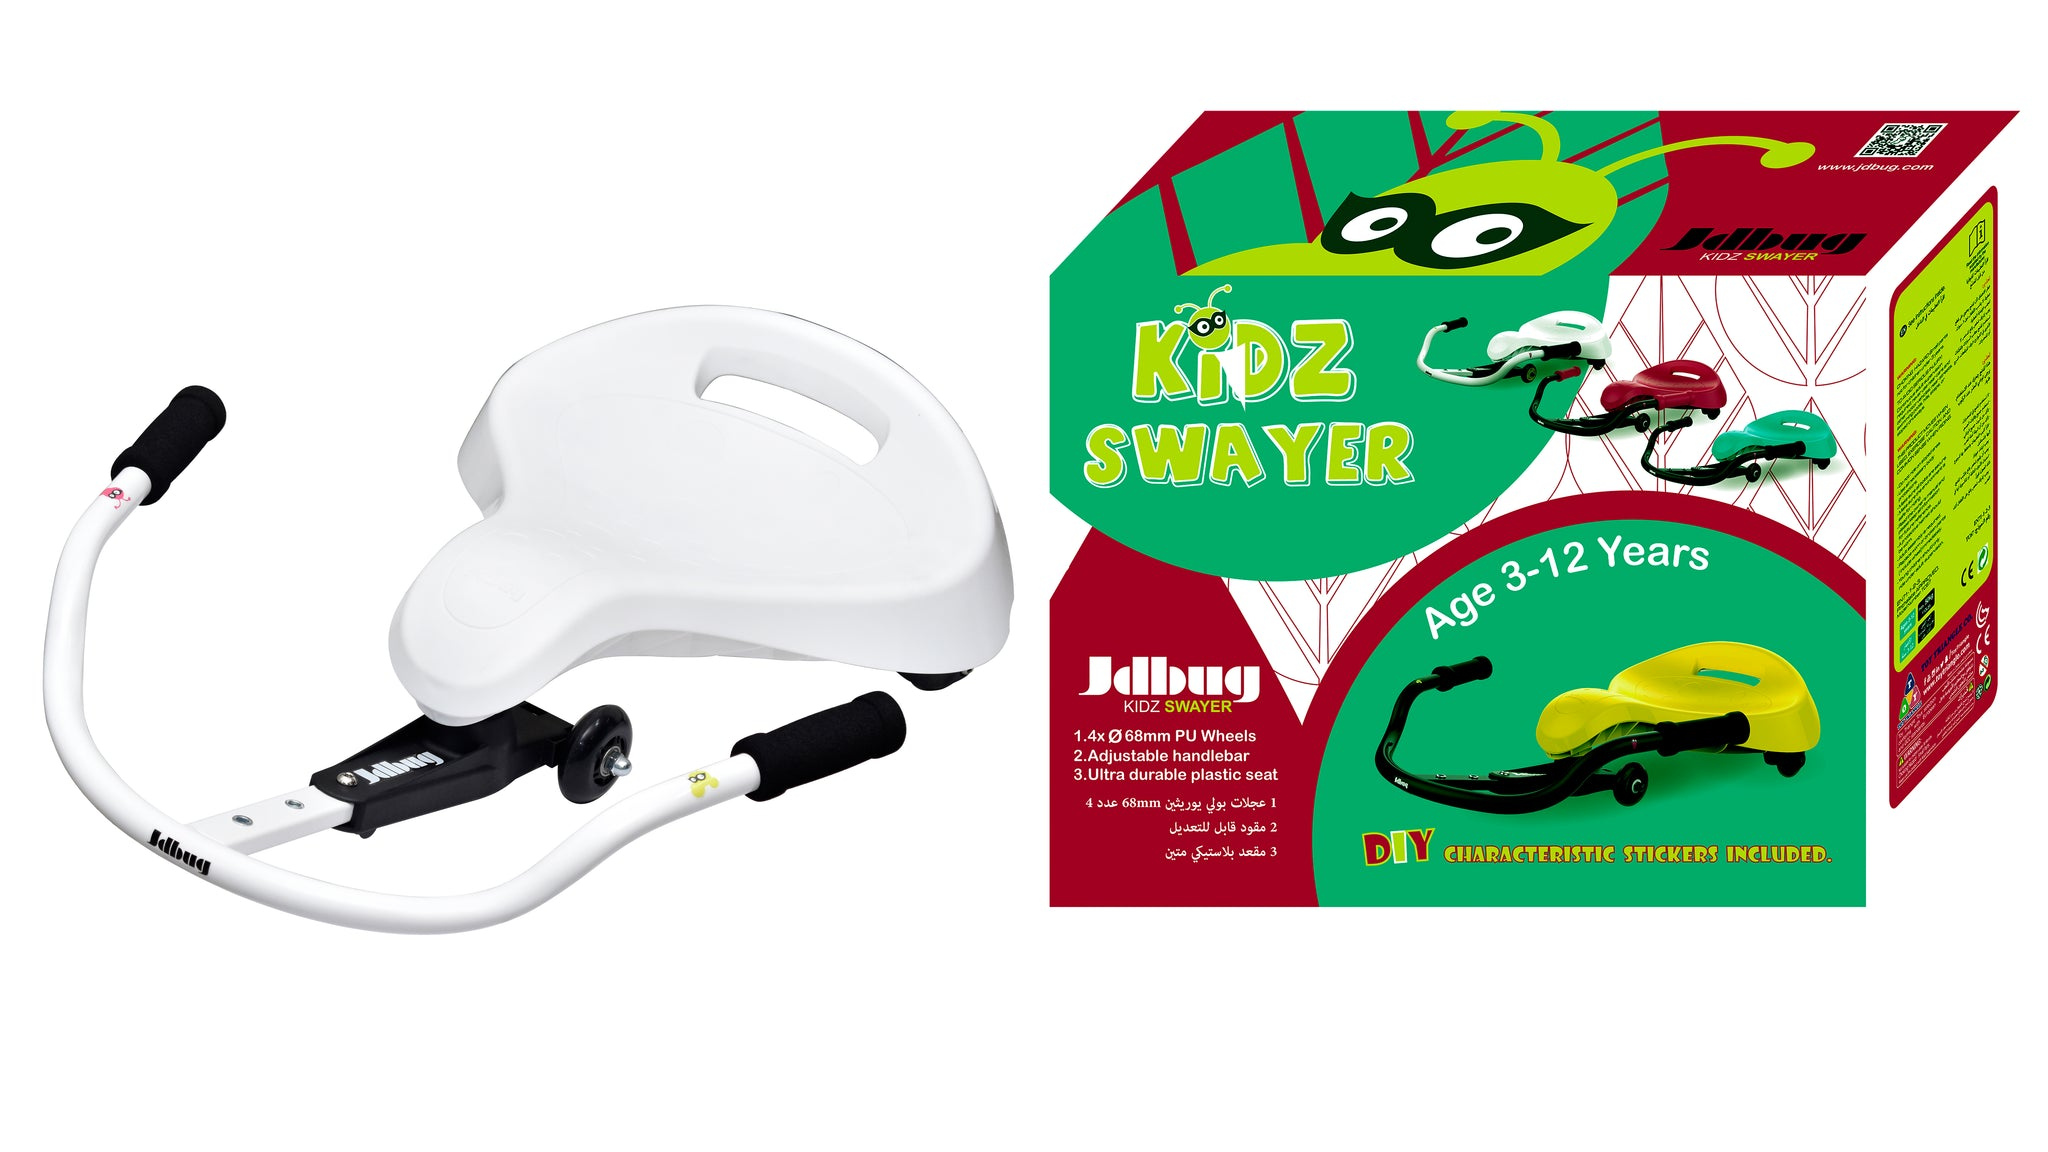 JD Bug Kidz Swayer White